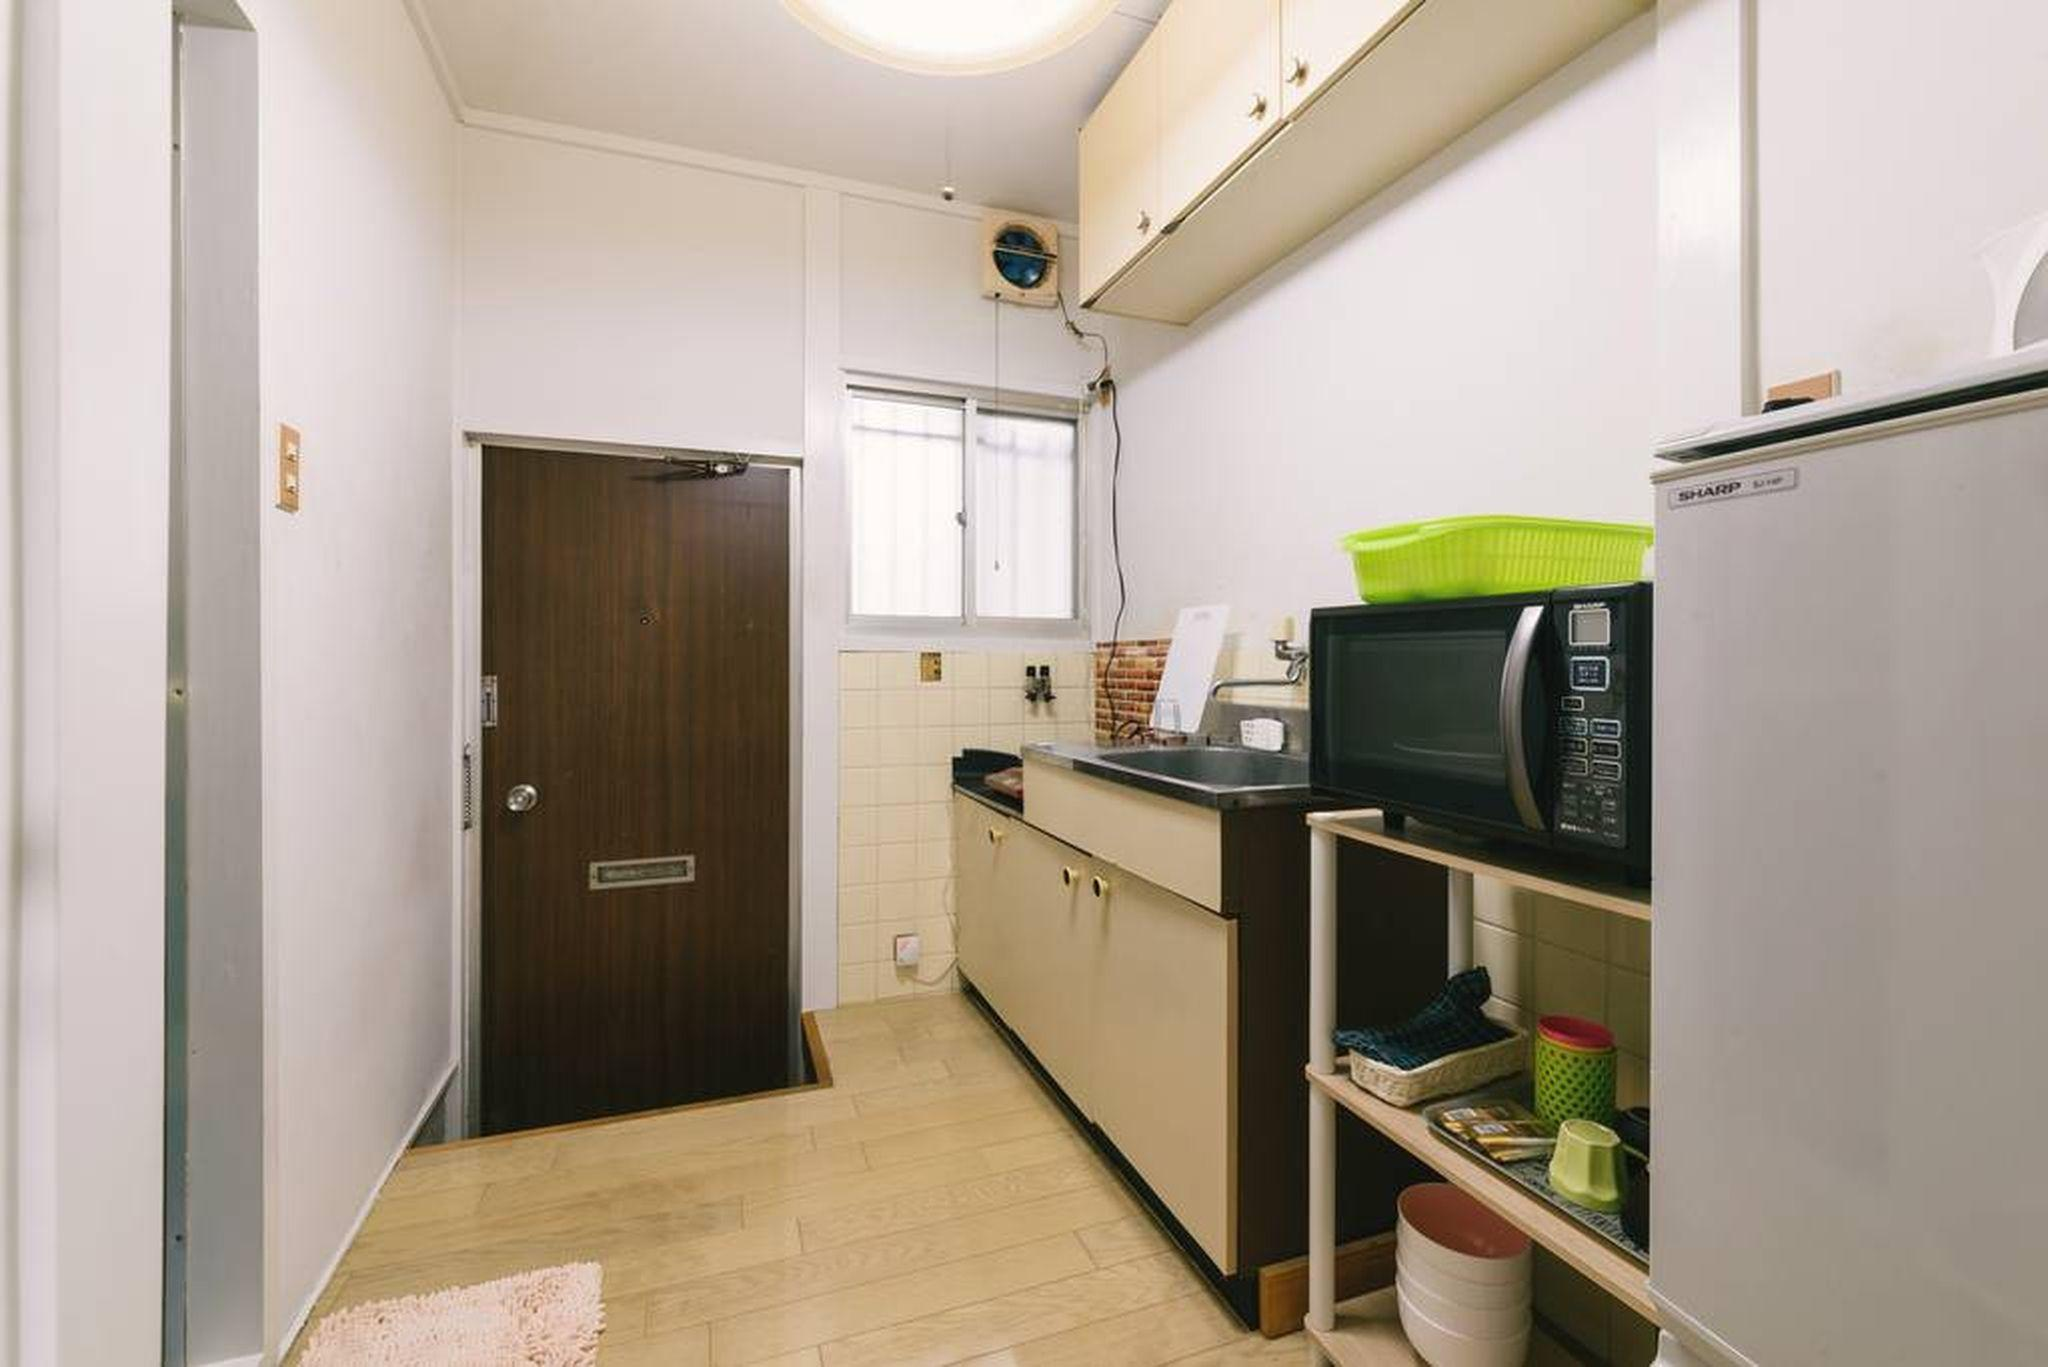 1 Japanese Modern Room With Kitchen And Bathroom 1201